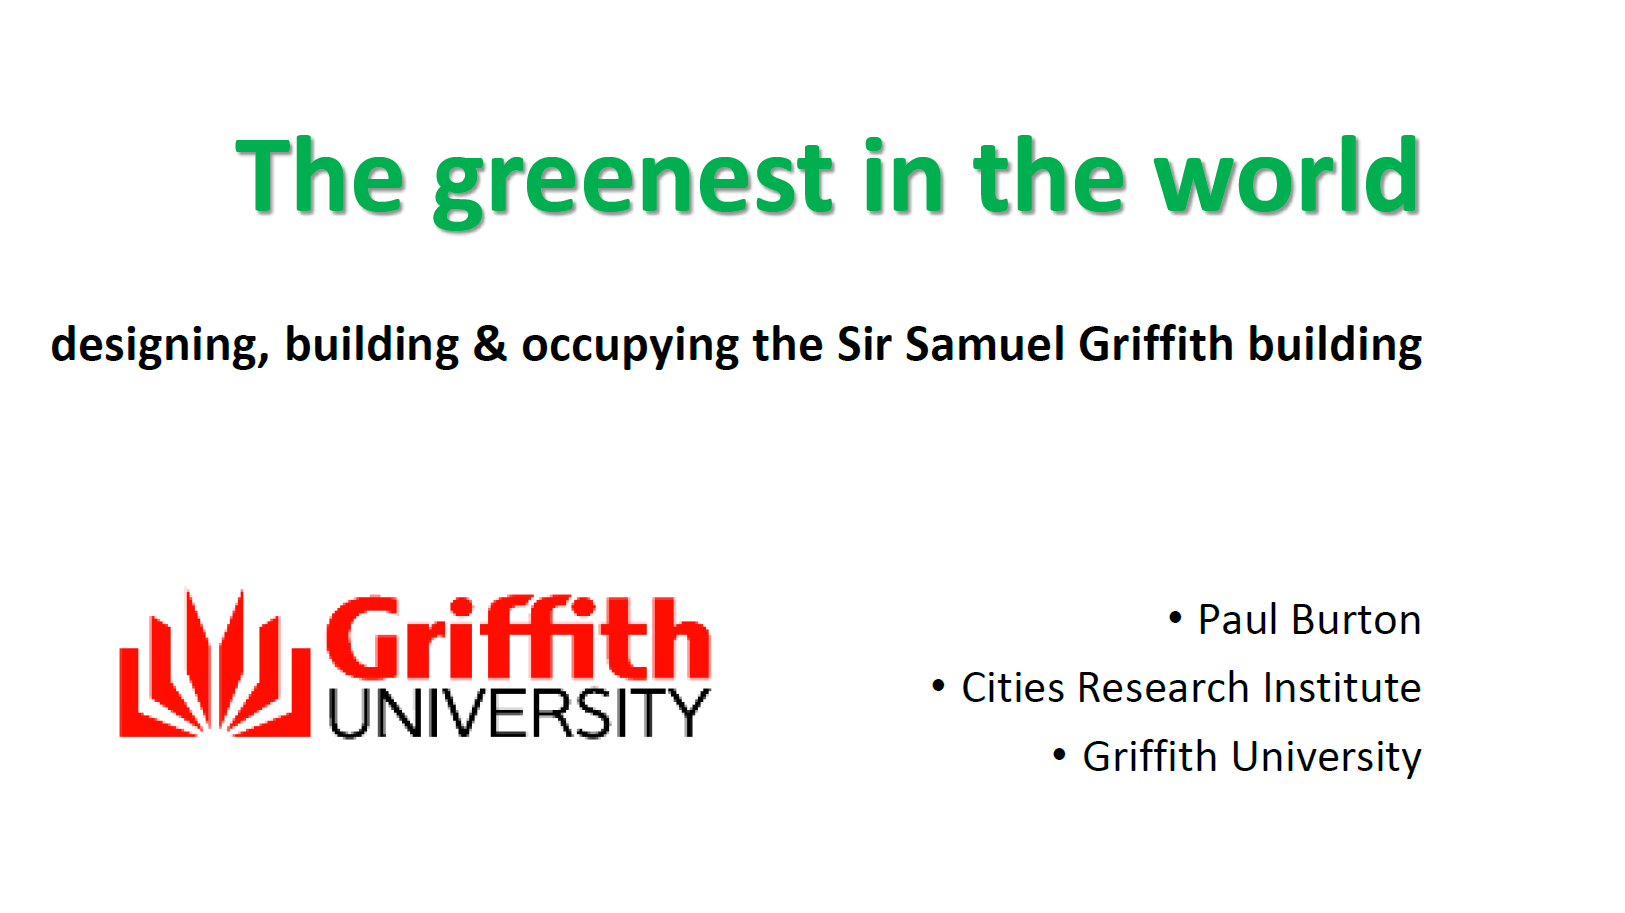 The Greenest In The World: Designing, Building & Occupying the Sir Samuel Griffith building